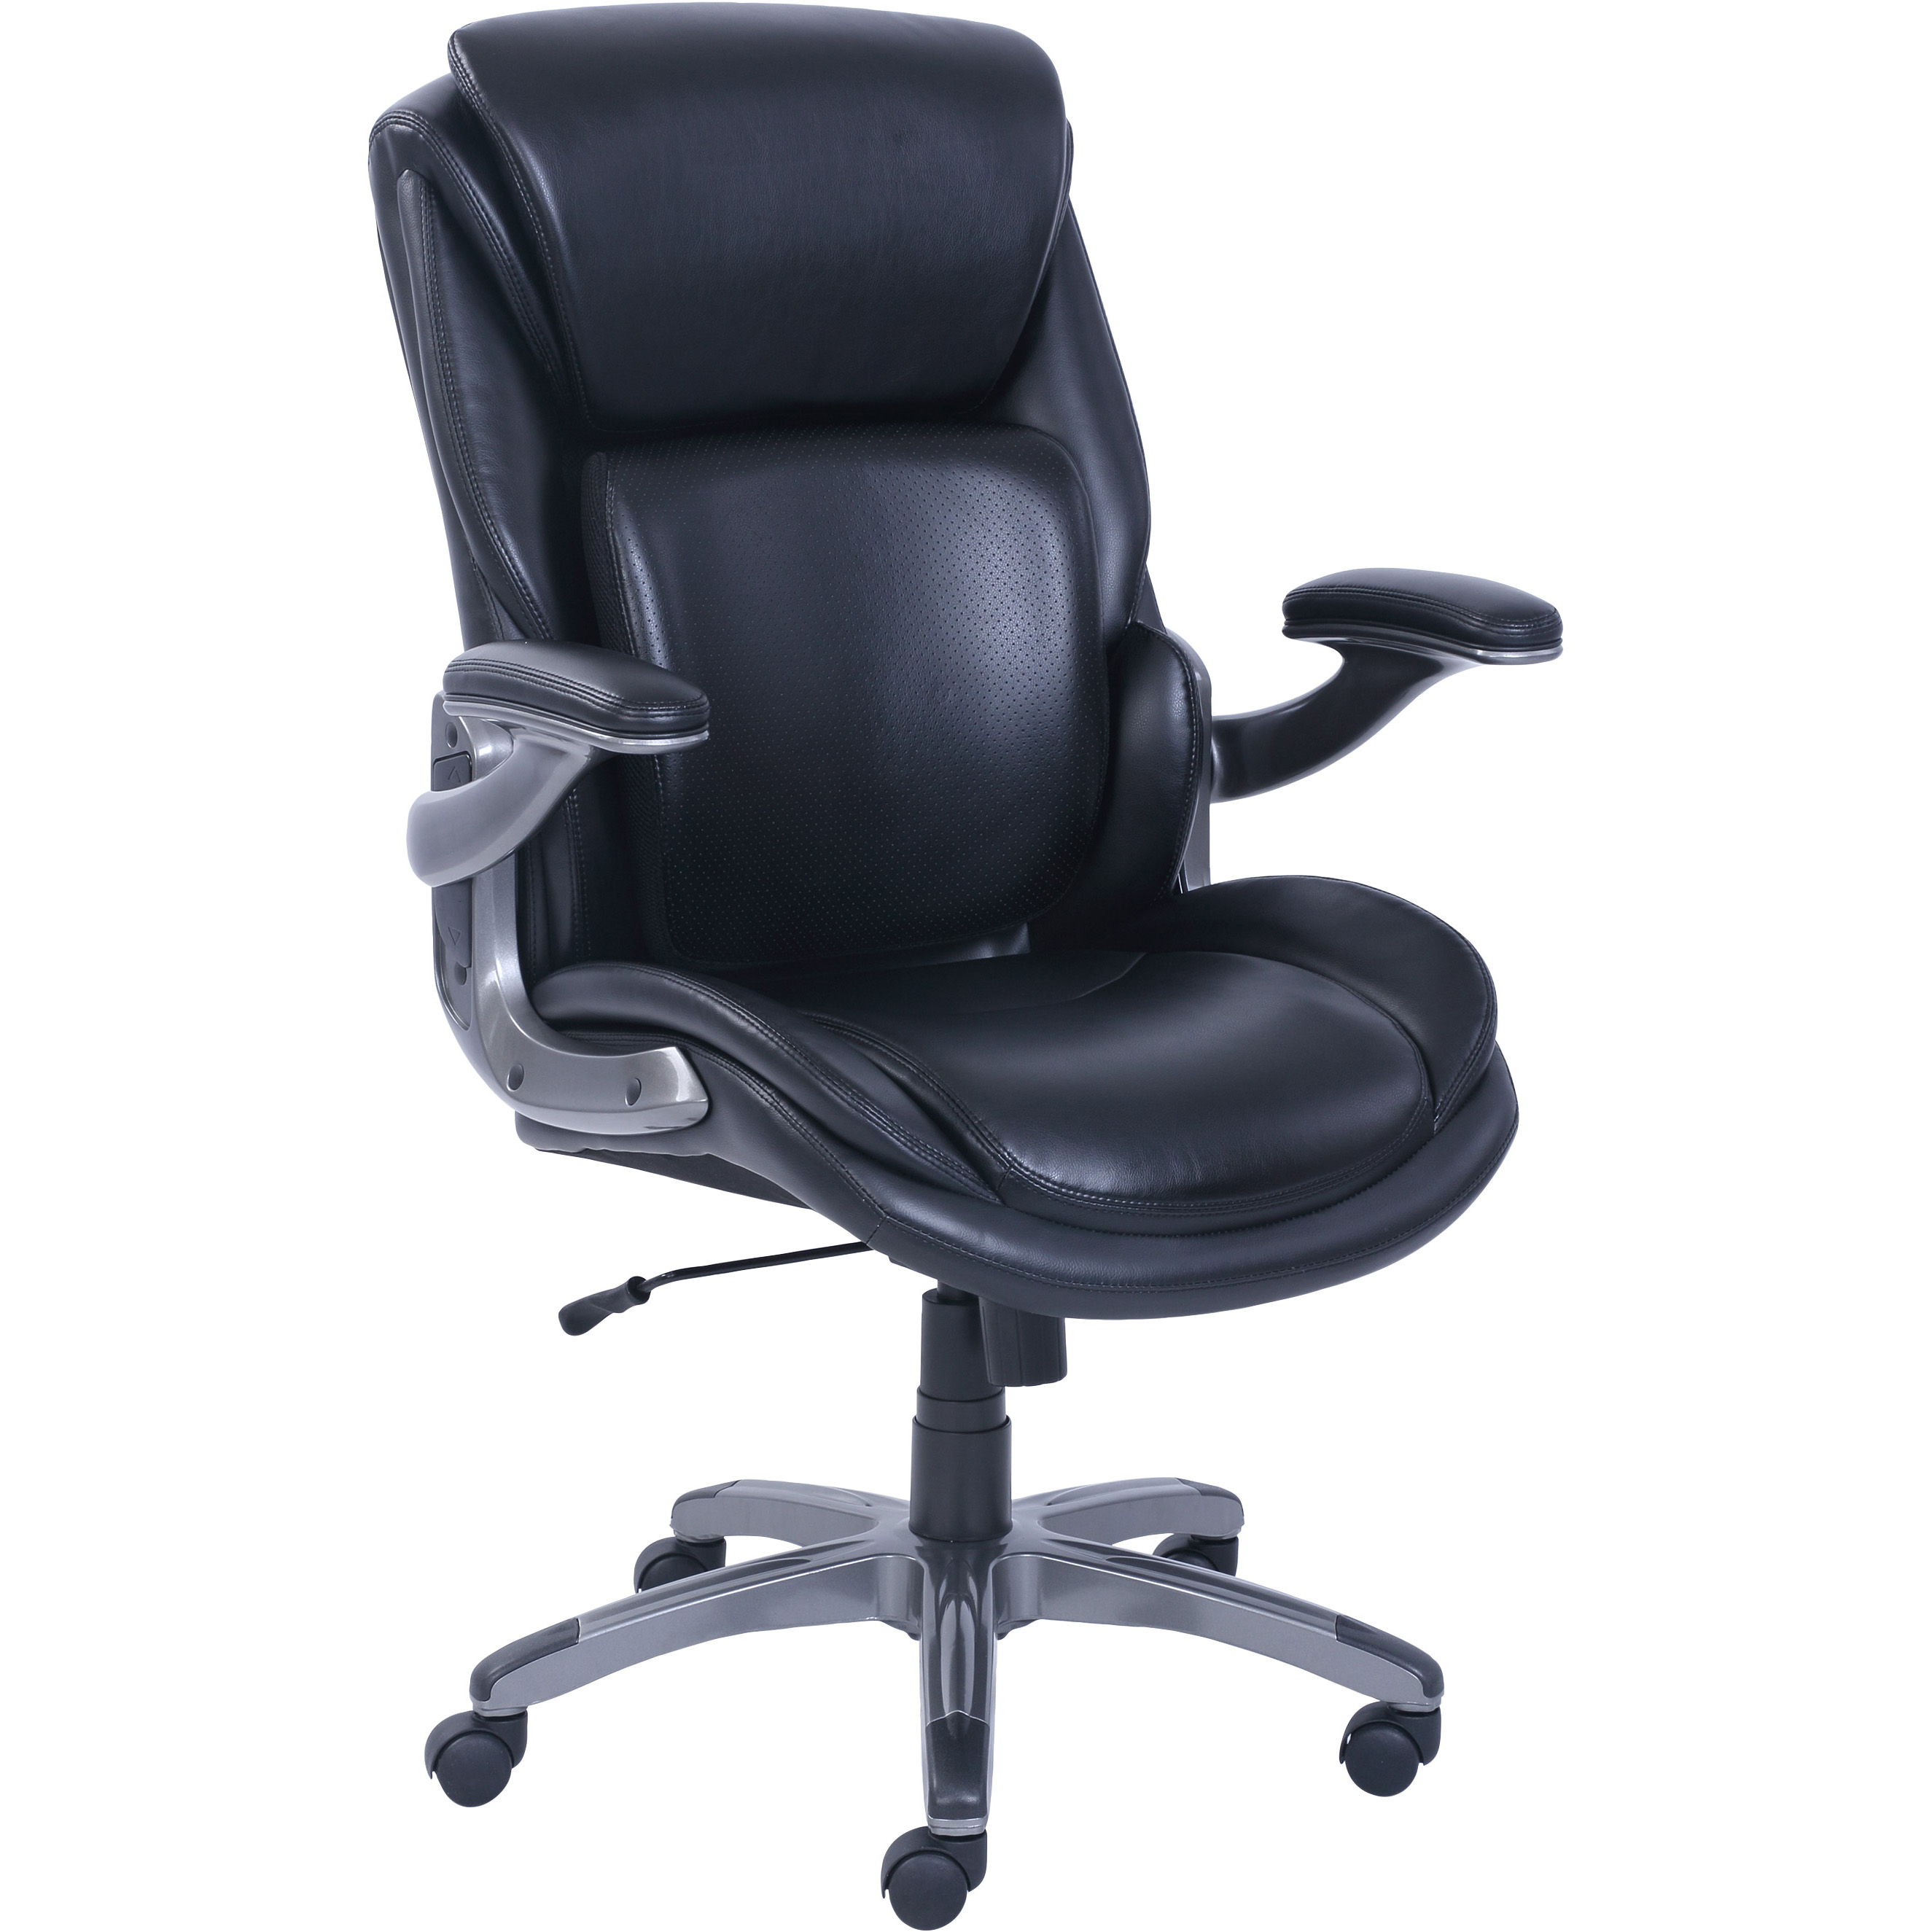 Best Ergonomic Office Chairs For Tall People - Serta 3-D Active Back Office Managers Chair, Leather Review